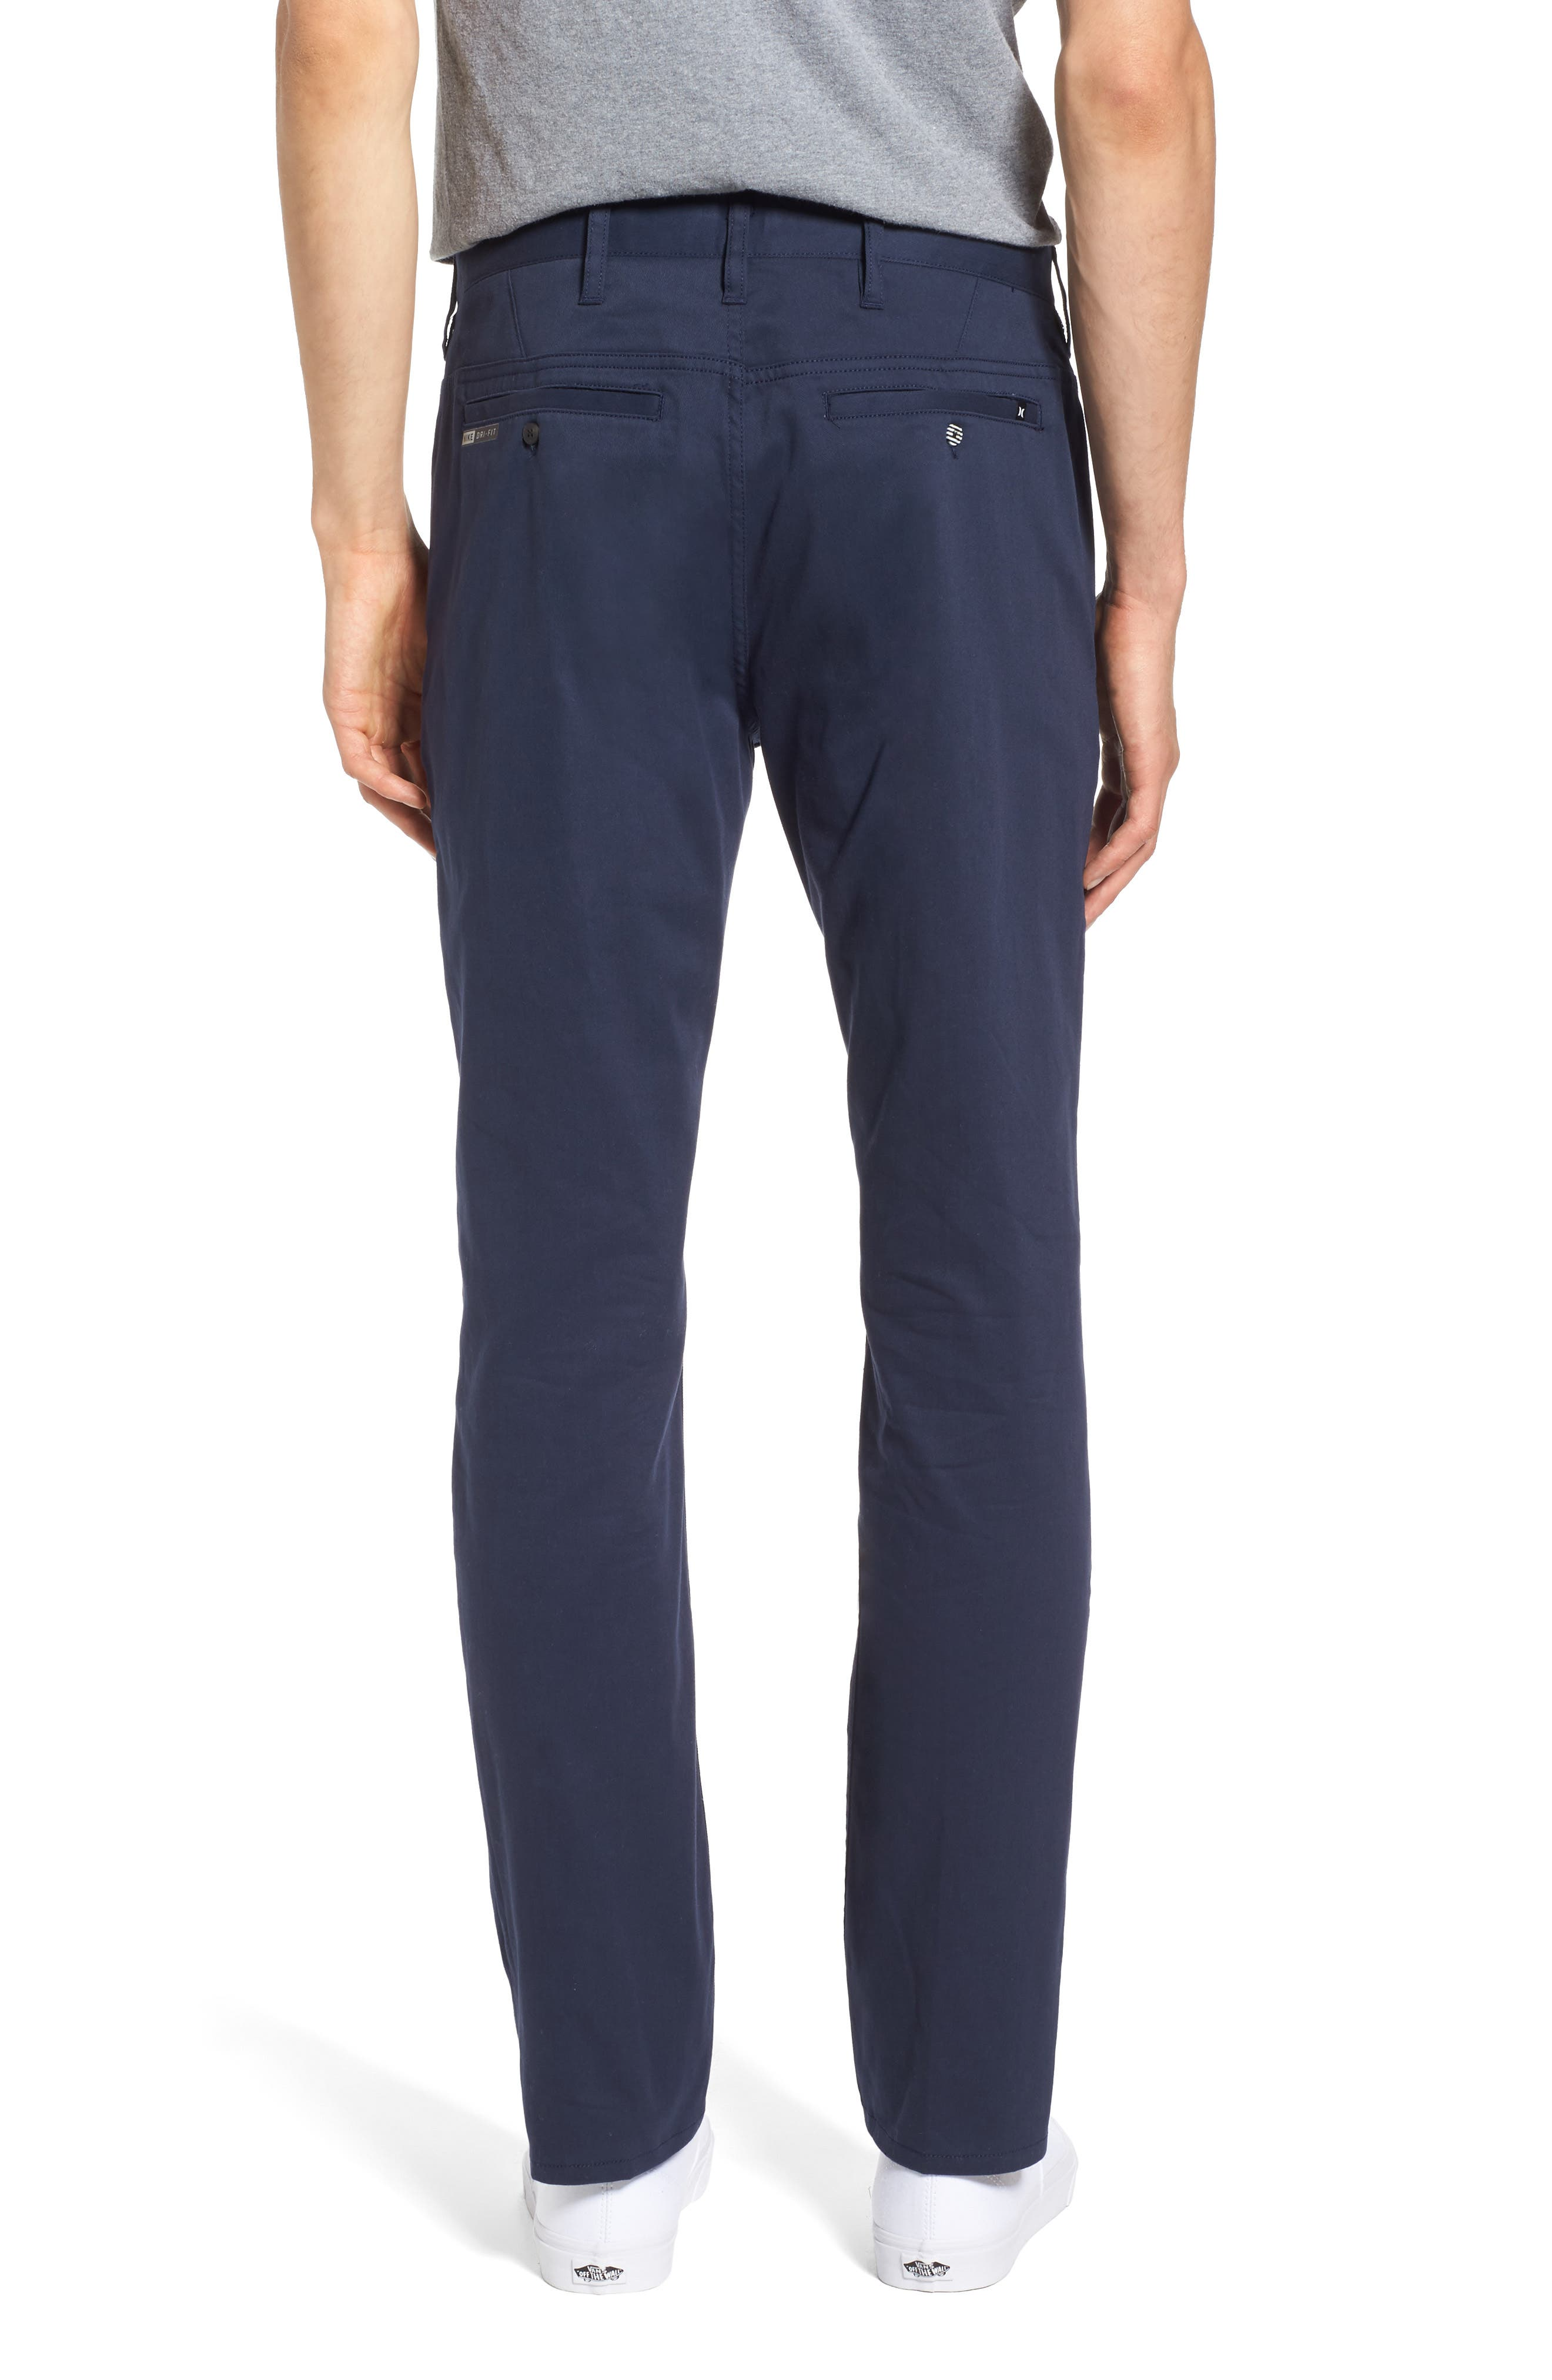 Dri-FIT Chinos,                             Alternate thumbnail 2, color,                             OBSIDIAN